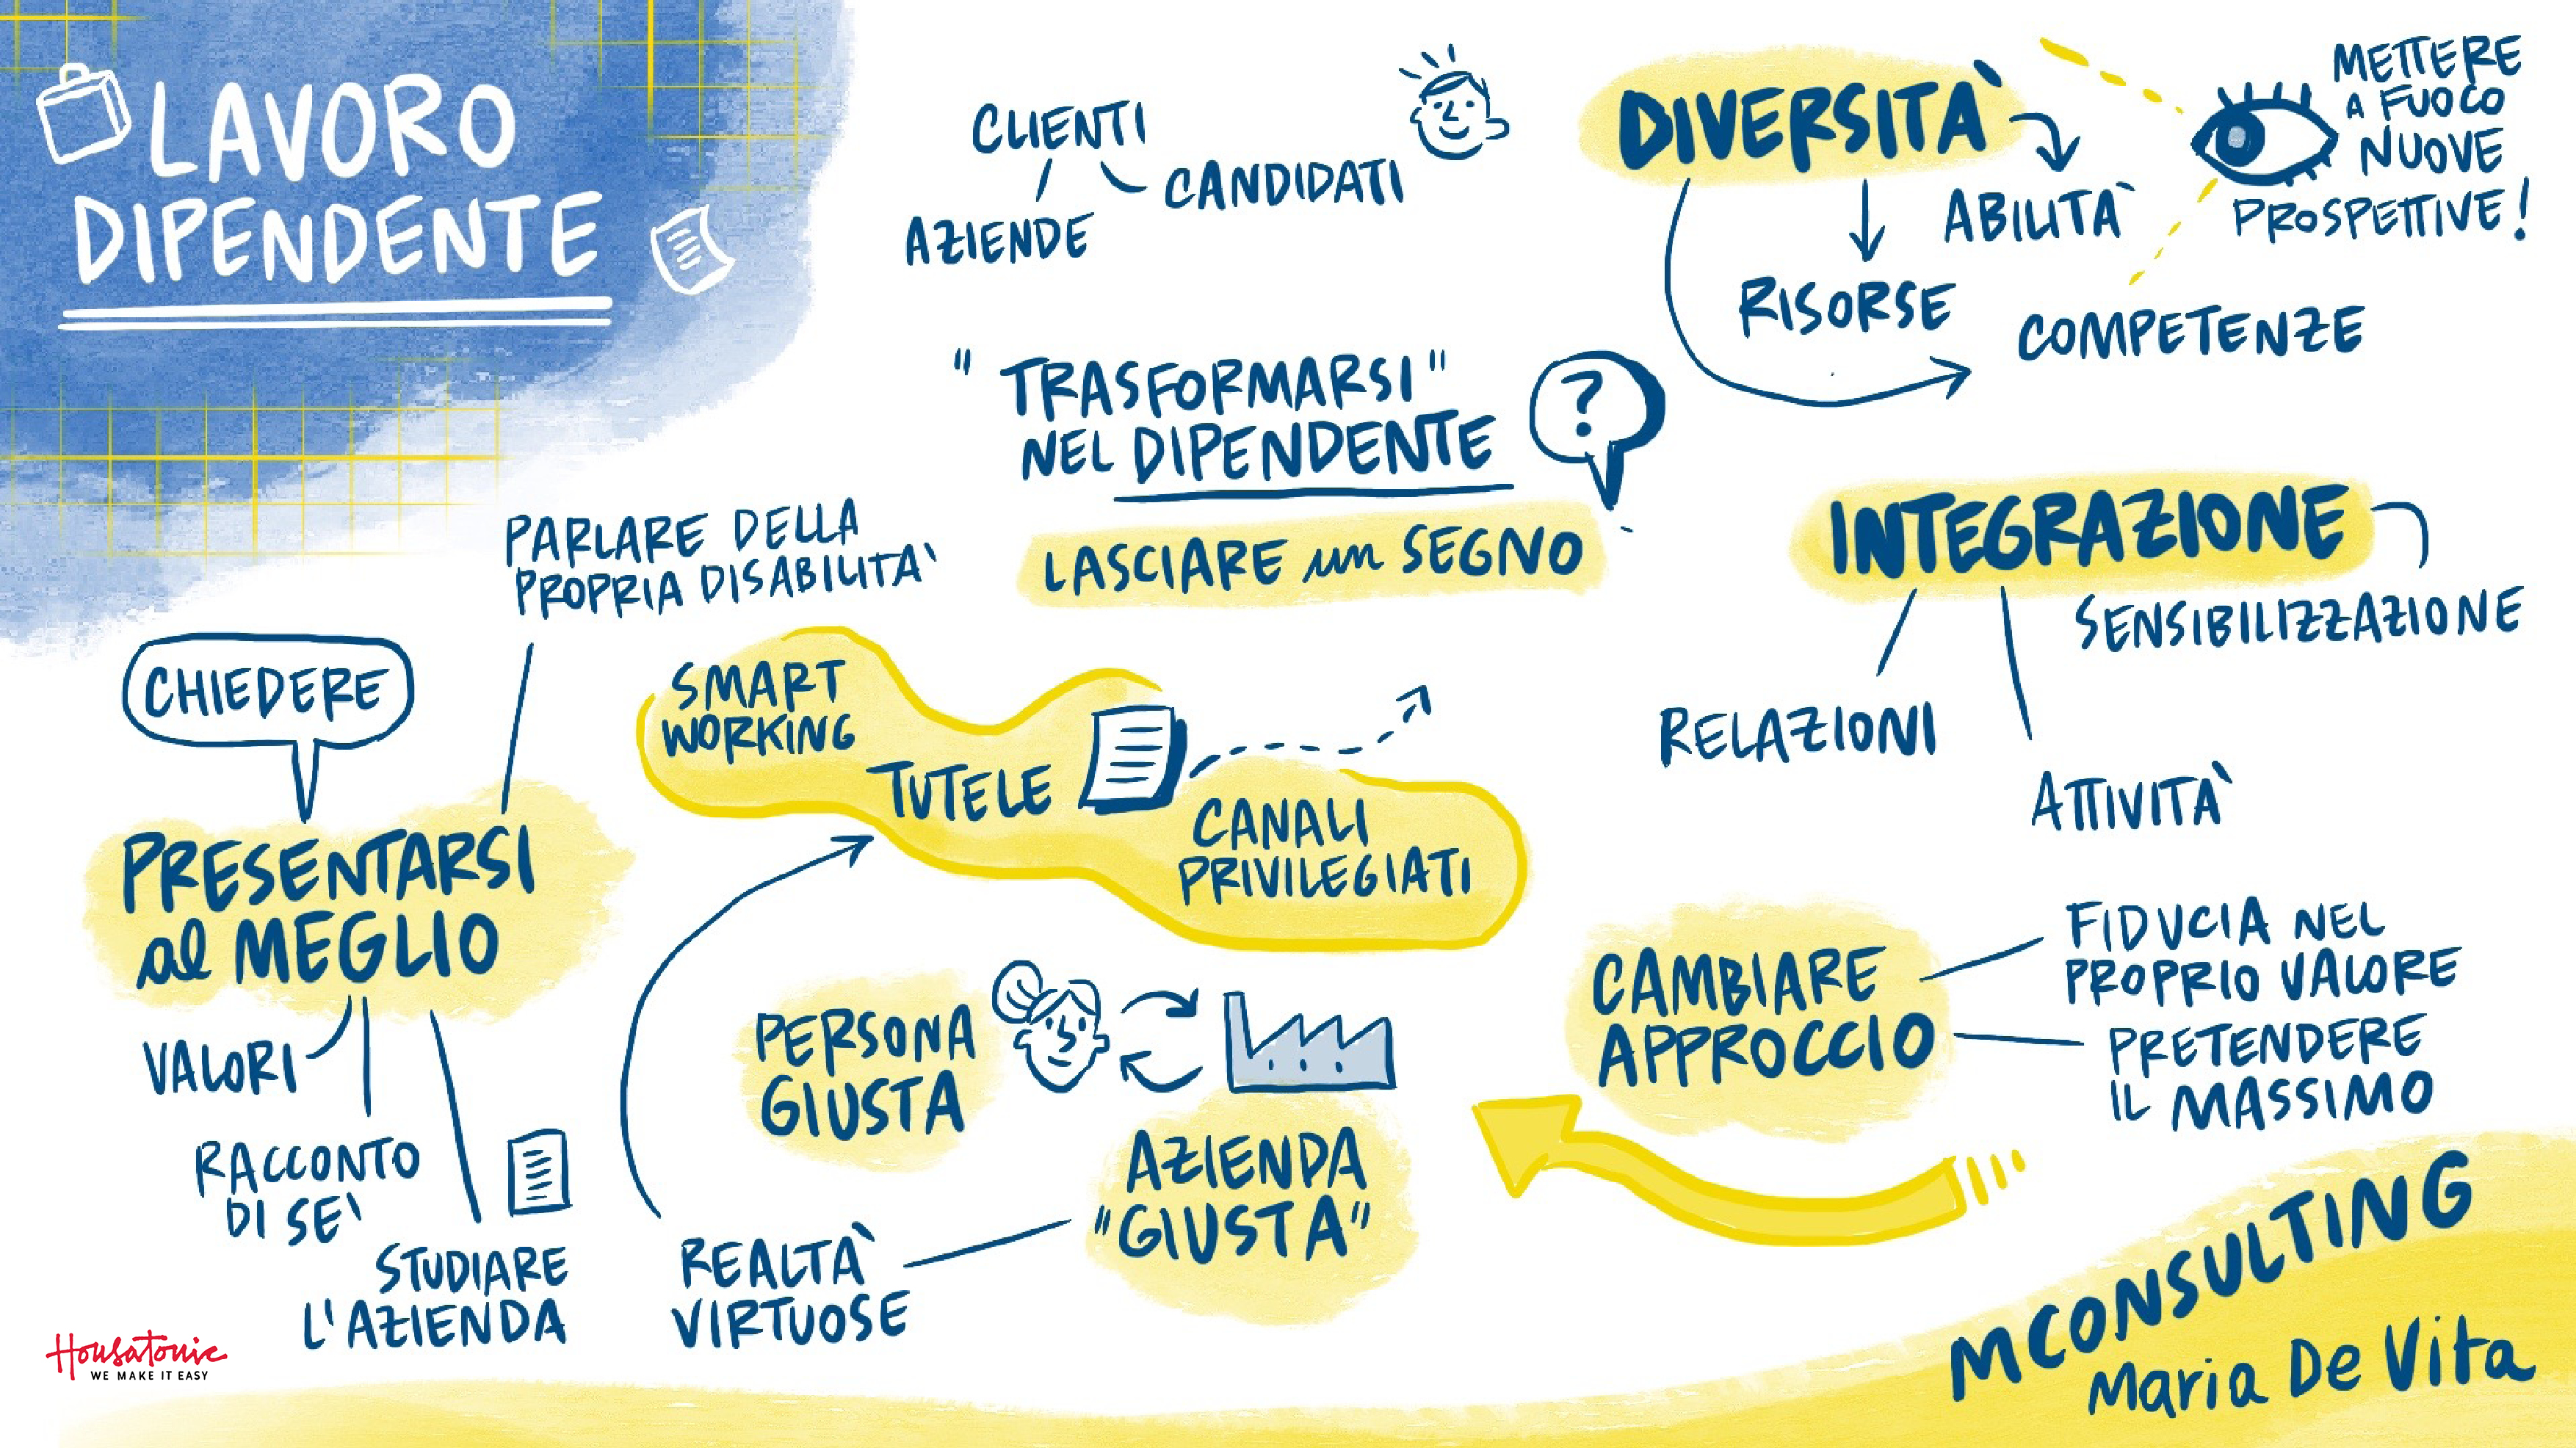 lavoro_mconsulting